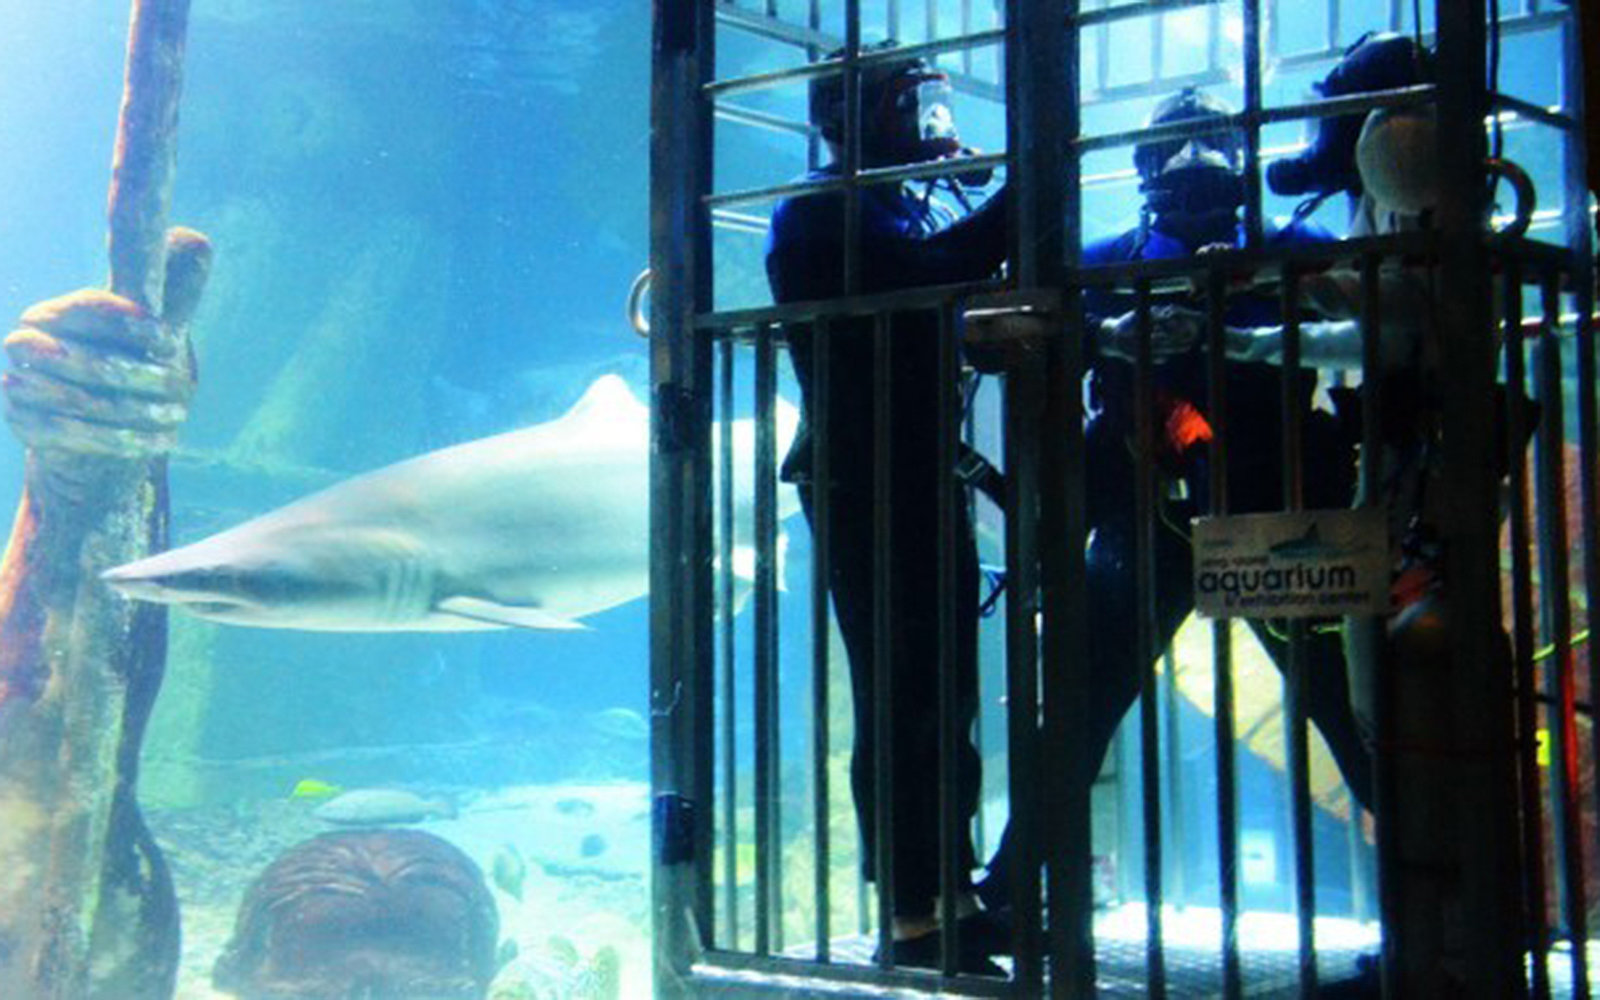 Atlantis Marine World shark tank wedding